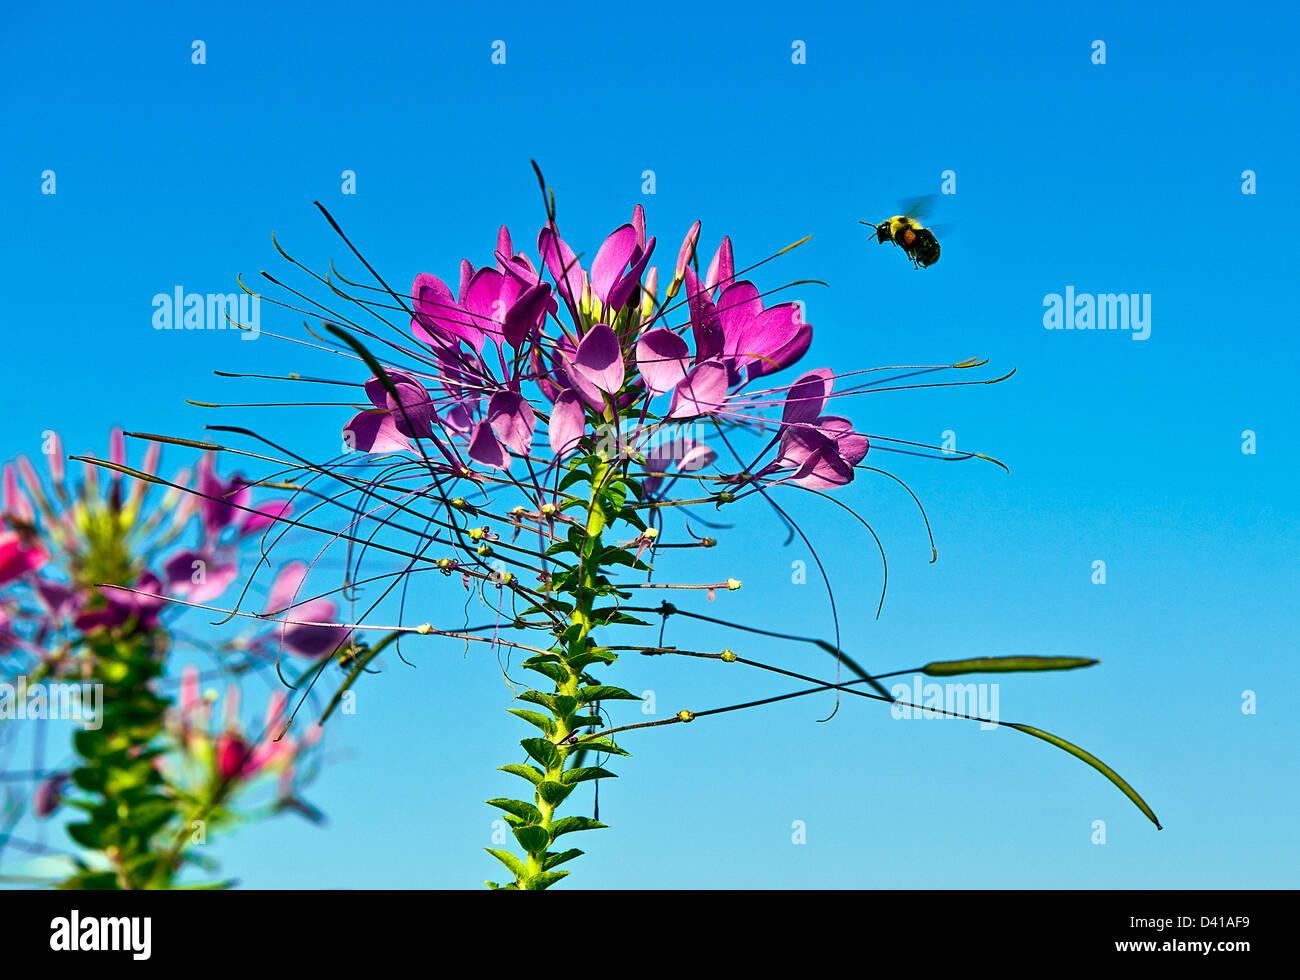 Bee searching for pollen from a flower. - Stock Image